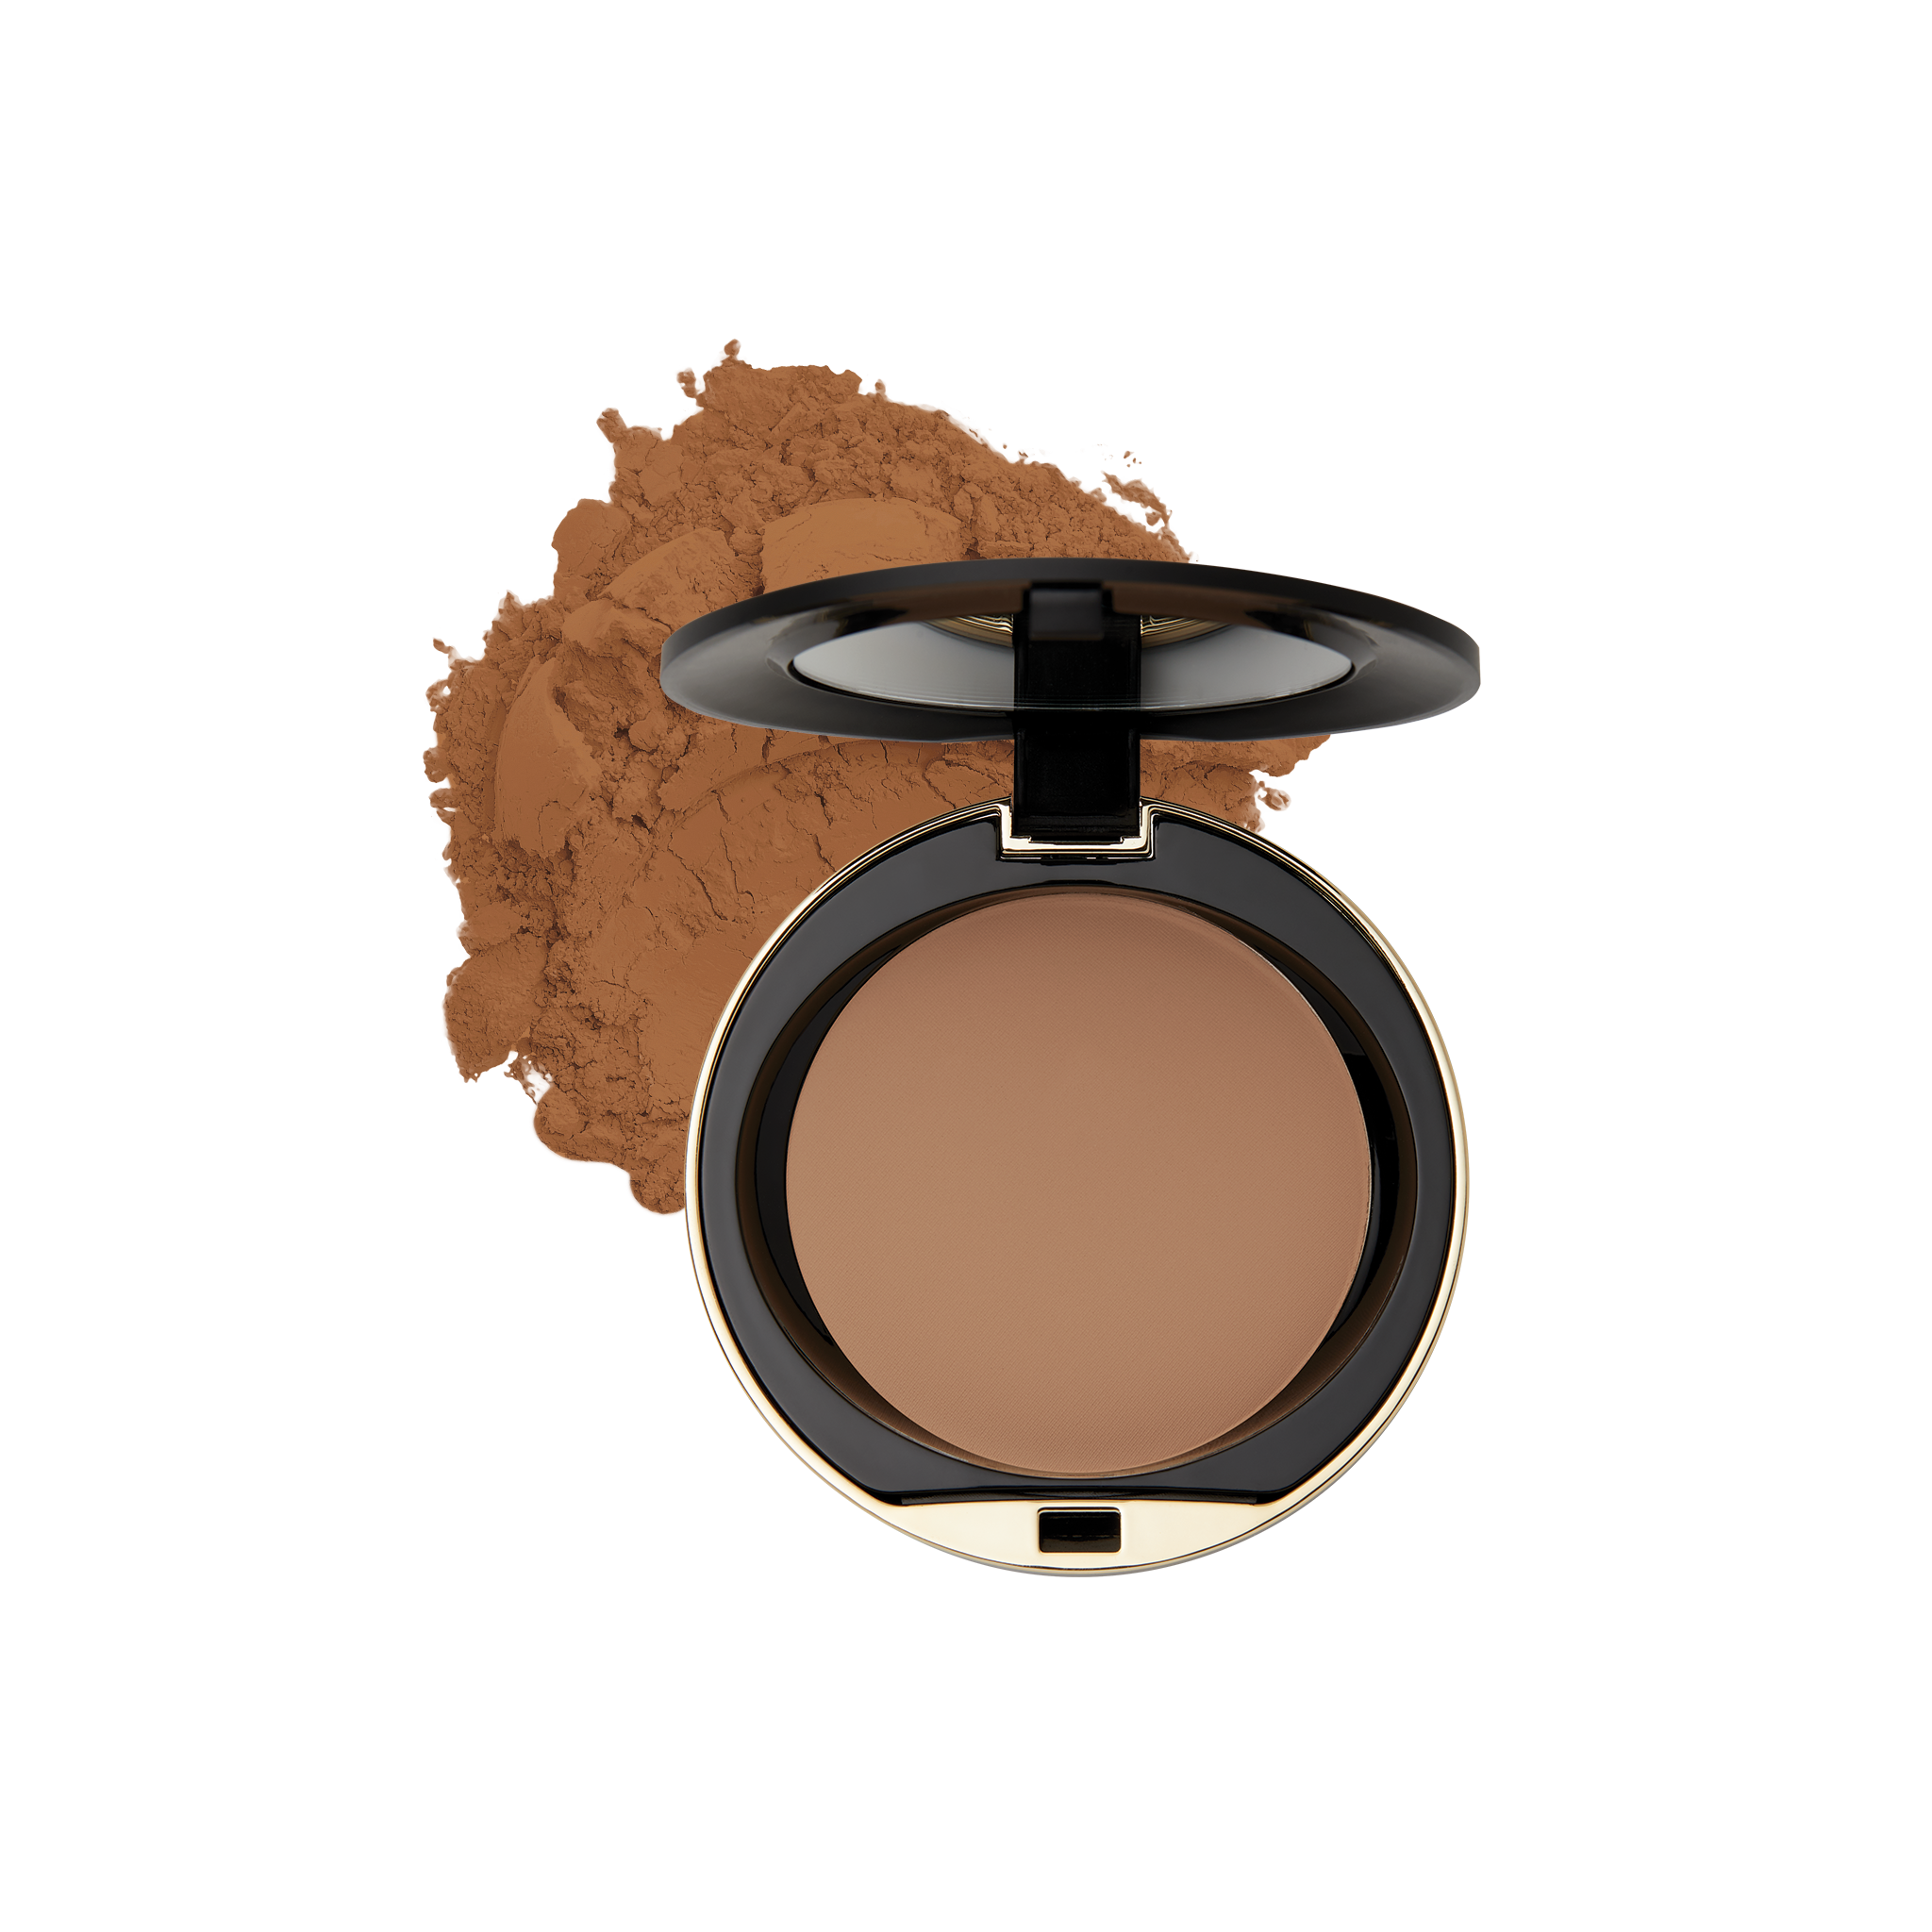 Milani Conceal Perfect Shine - Best Face Powder